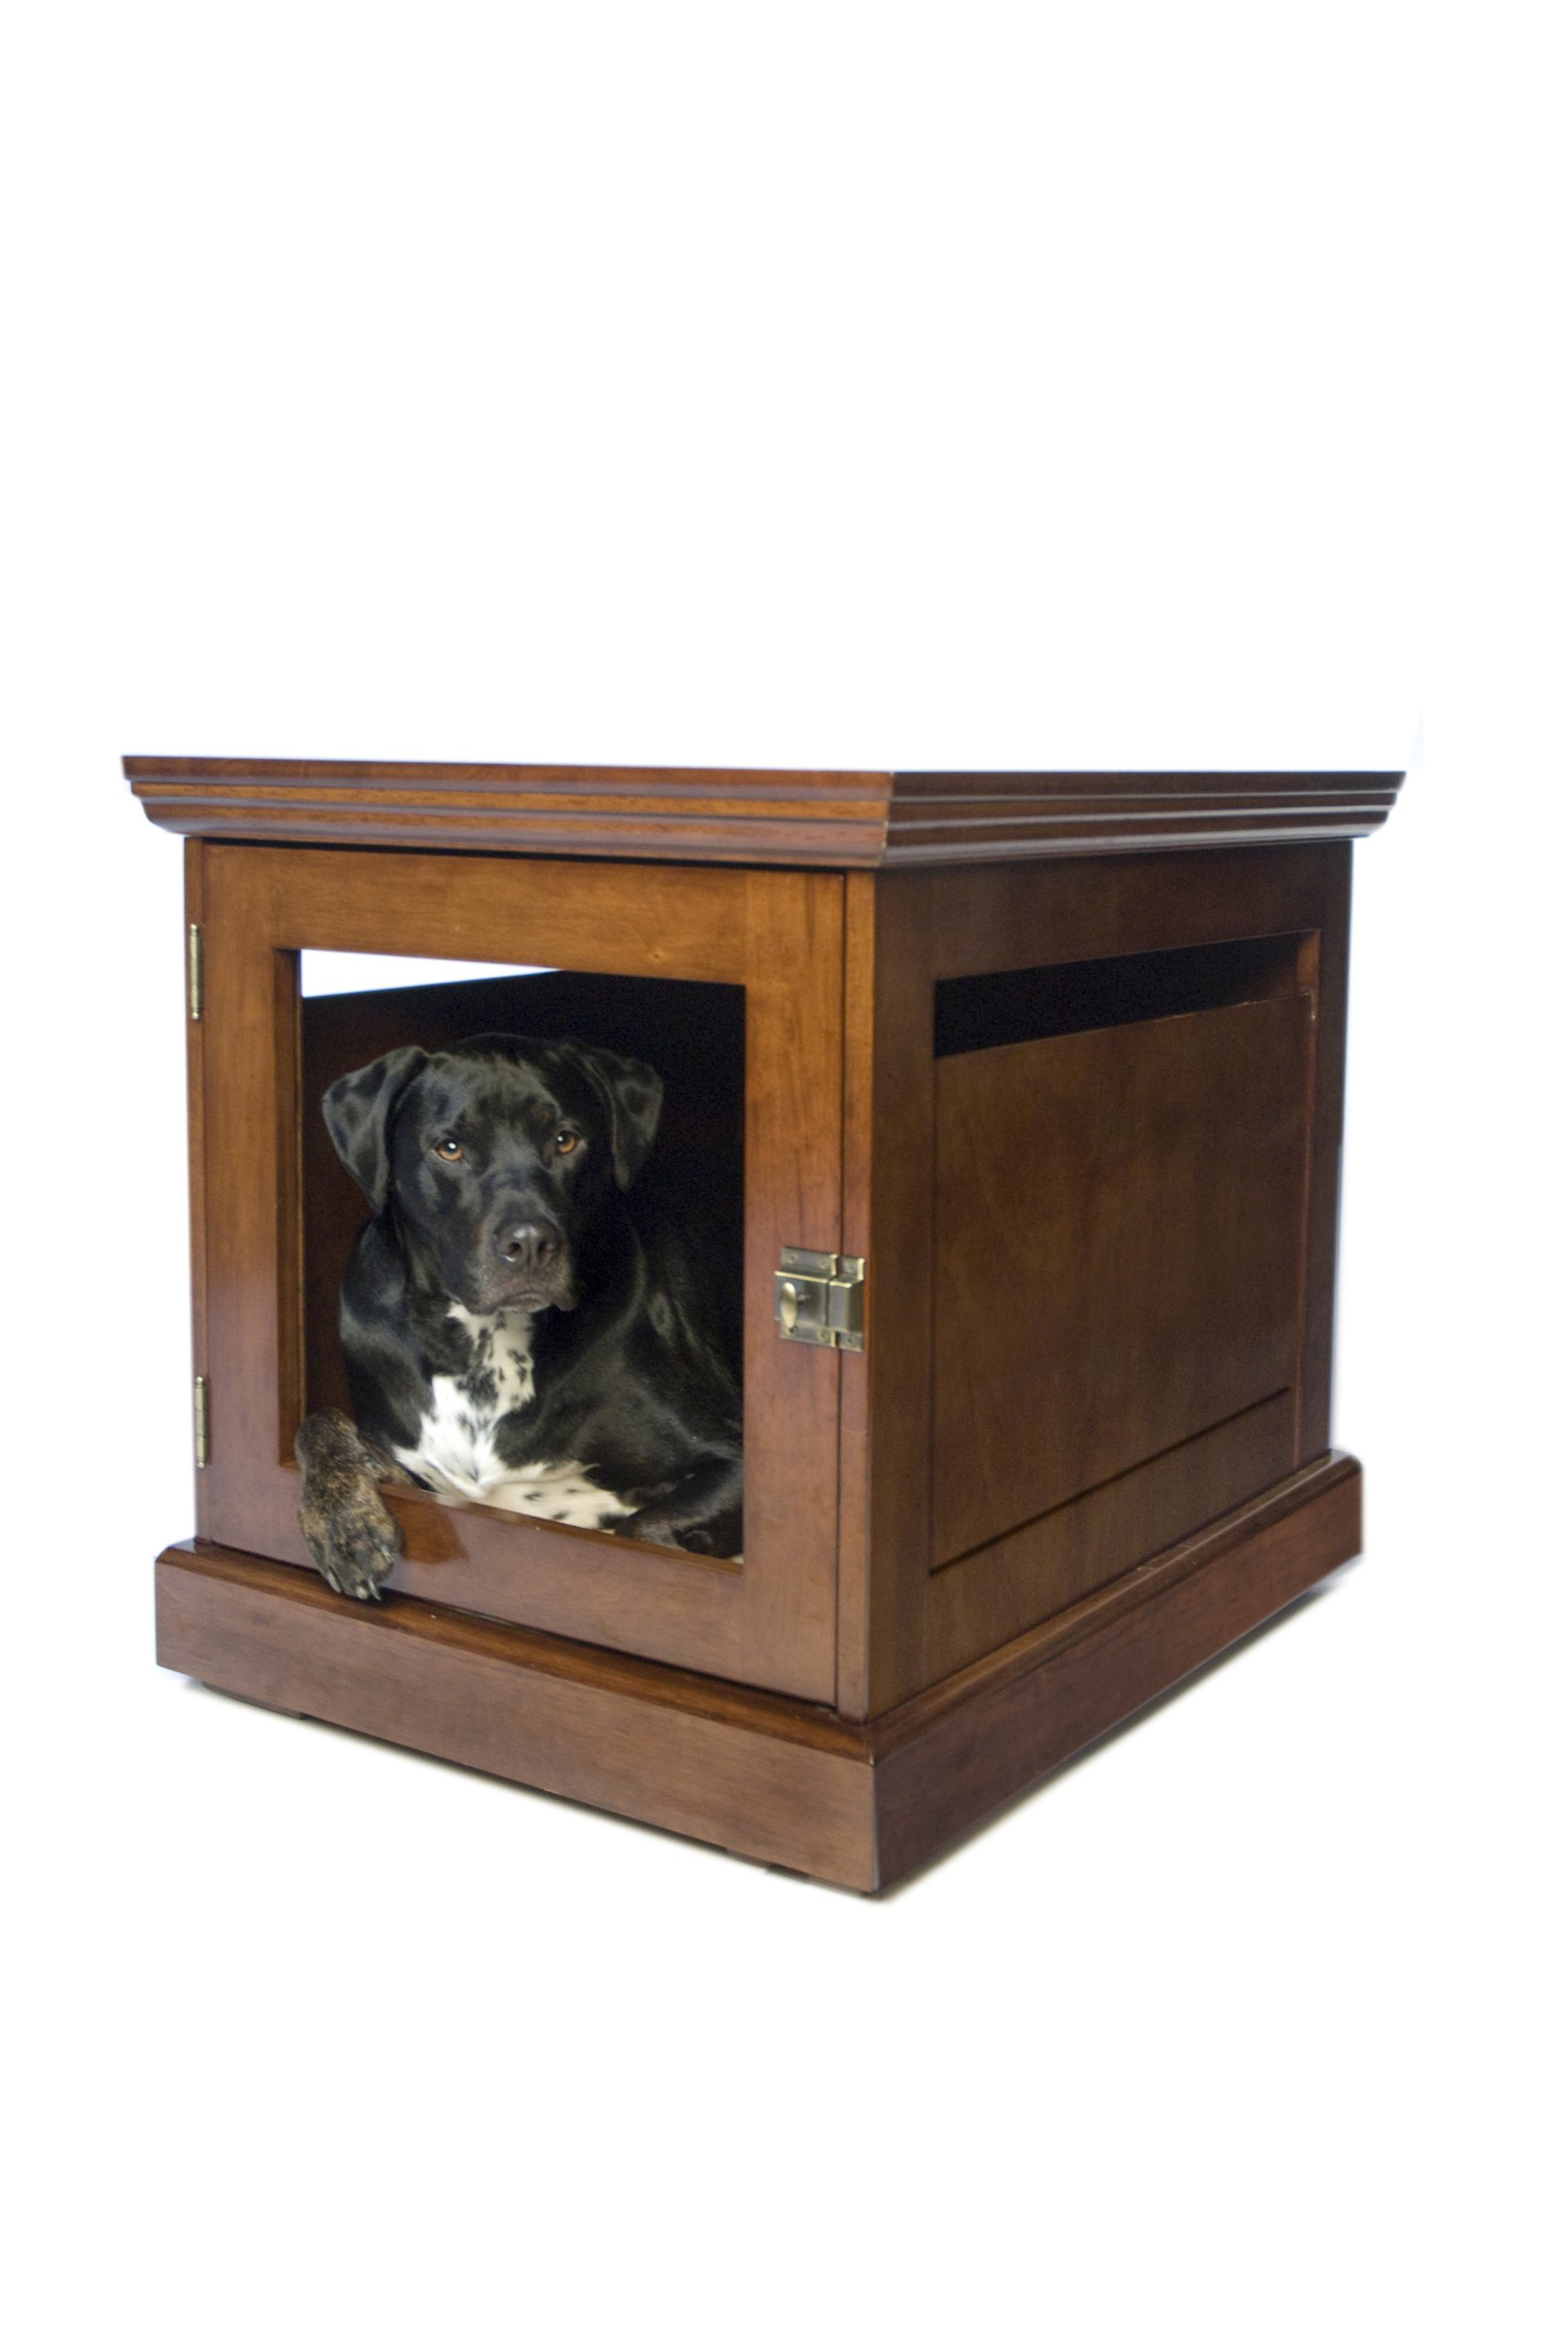 designer dog crate furniture ruffhaus luxury wooden gerdan co get quotations denhaus townhaus indoor wood dog crate house end table furniture bed cheap dxdh011 find dxdh011 deals on